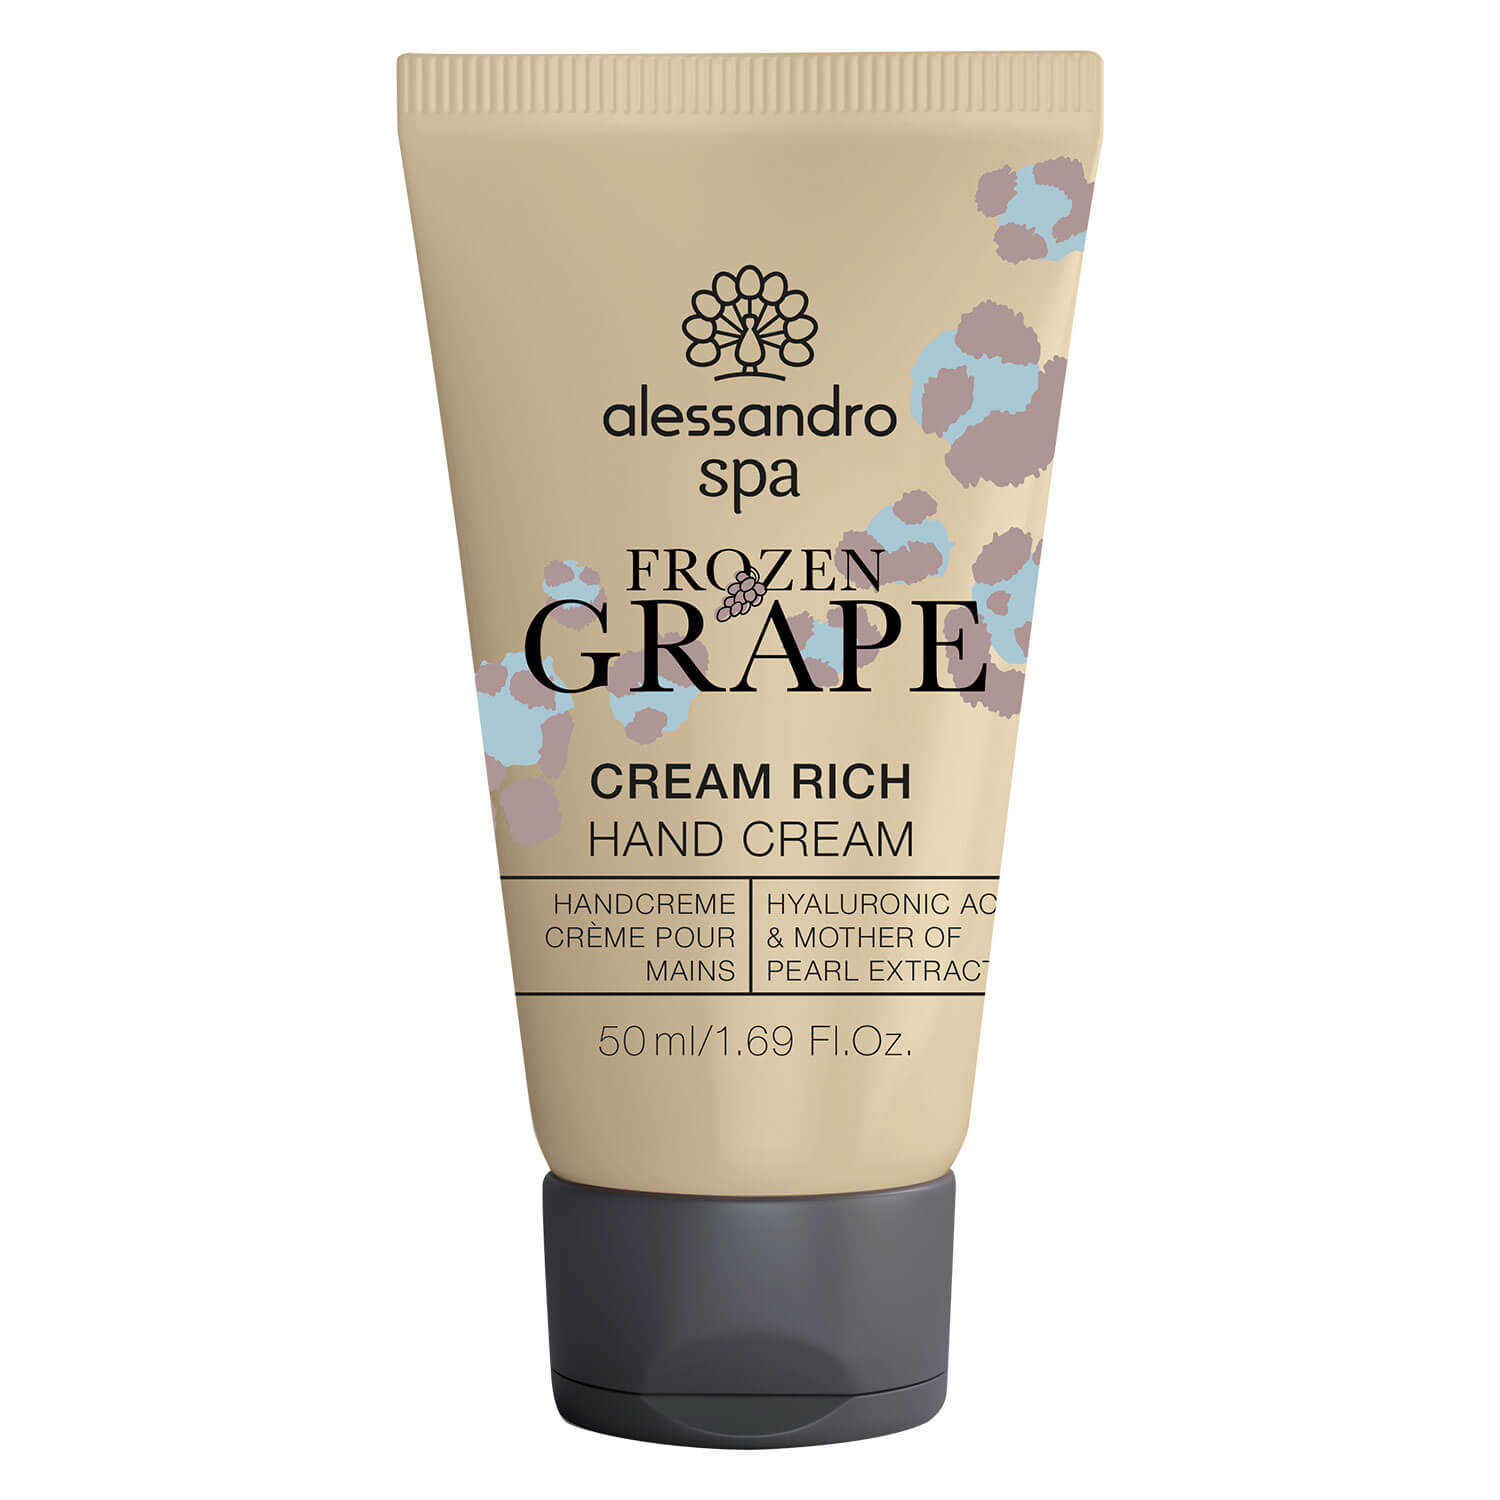 Alessandro Spa - Cream Rich Hand Cream Frozen Grape